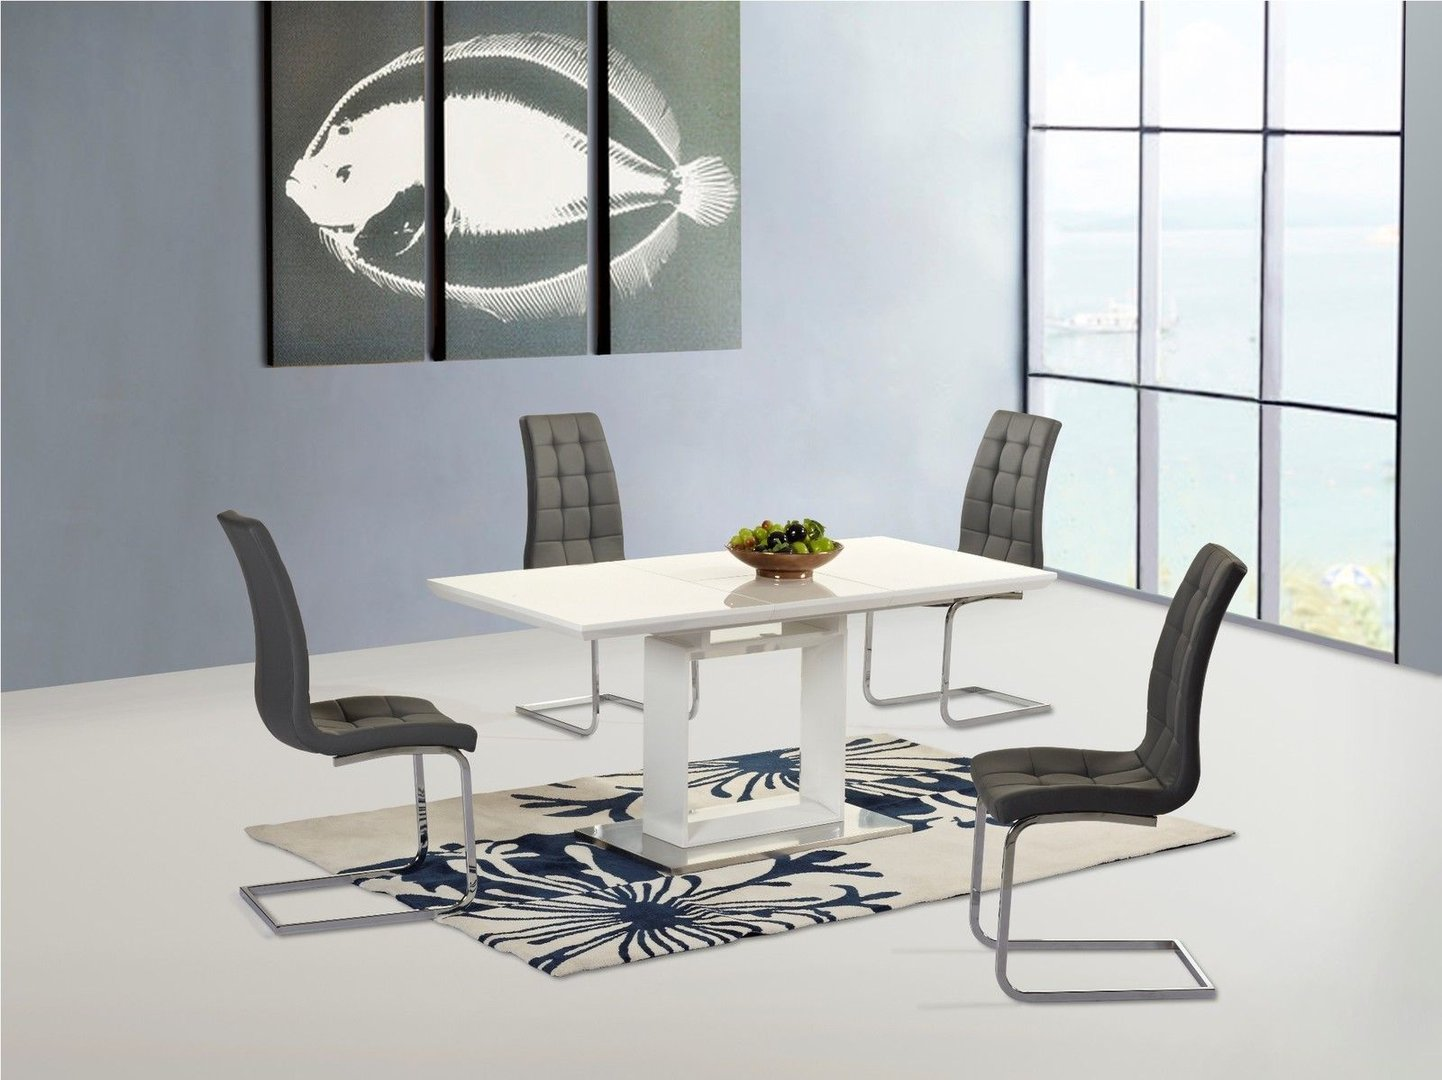 New White High Gloss Extending Dining Table And 6 Grey Chairs Set